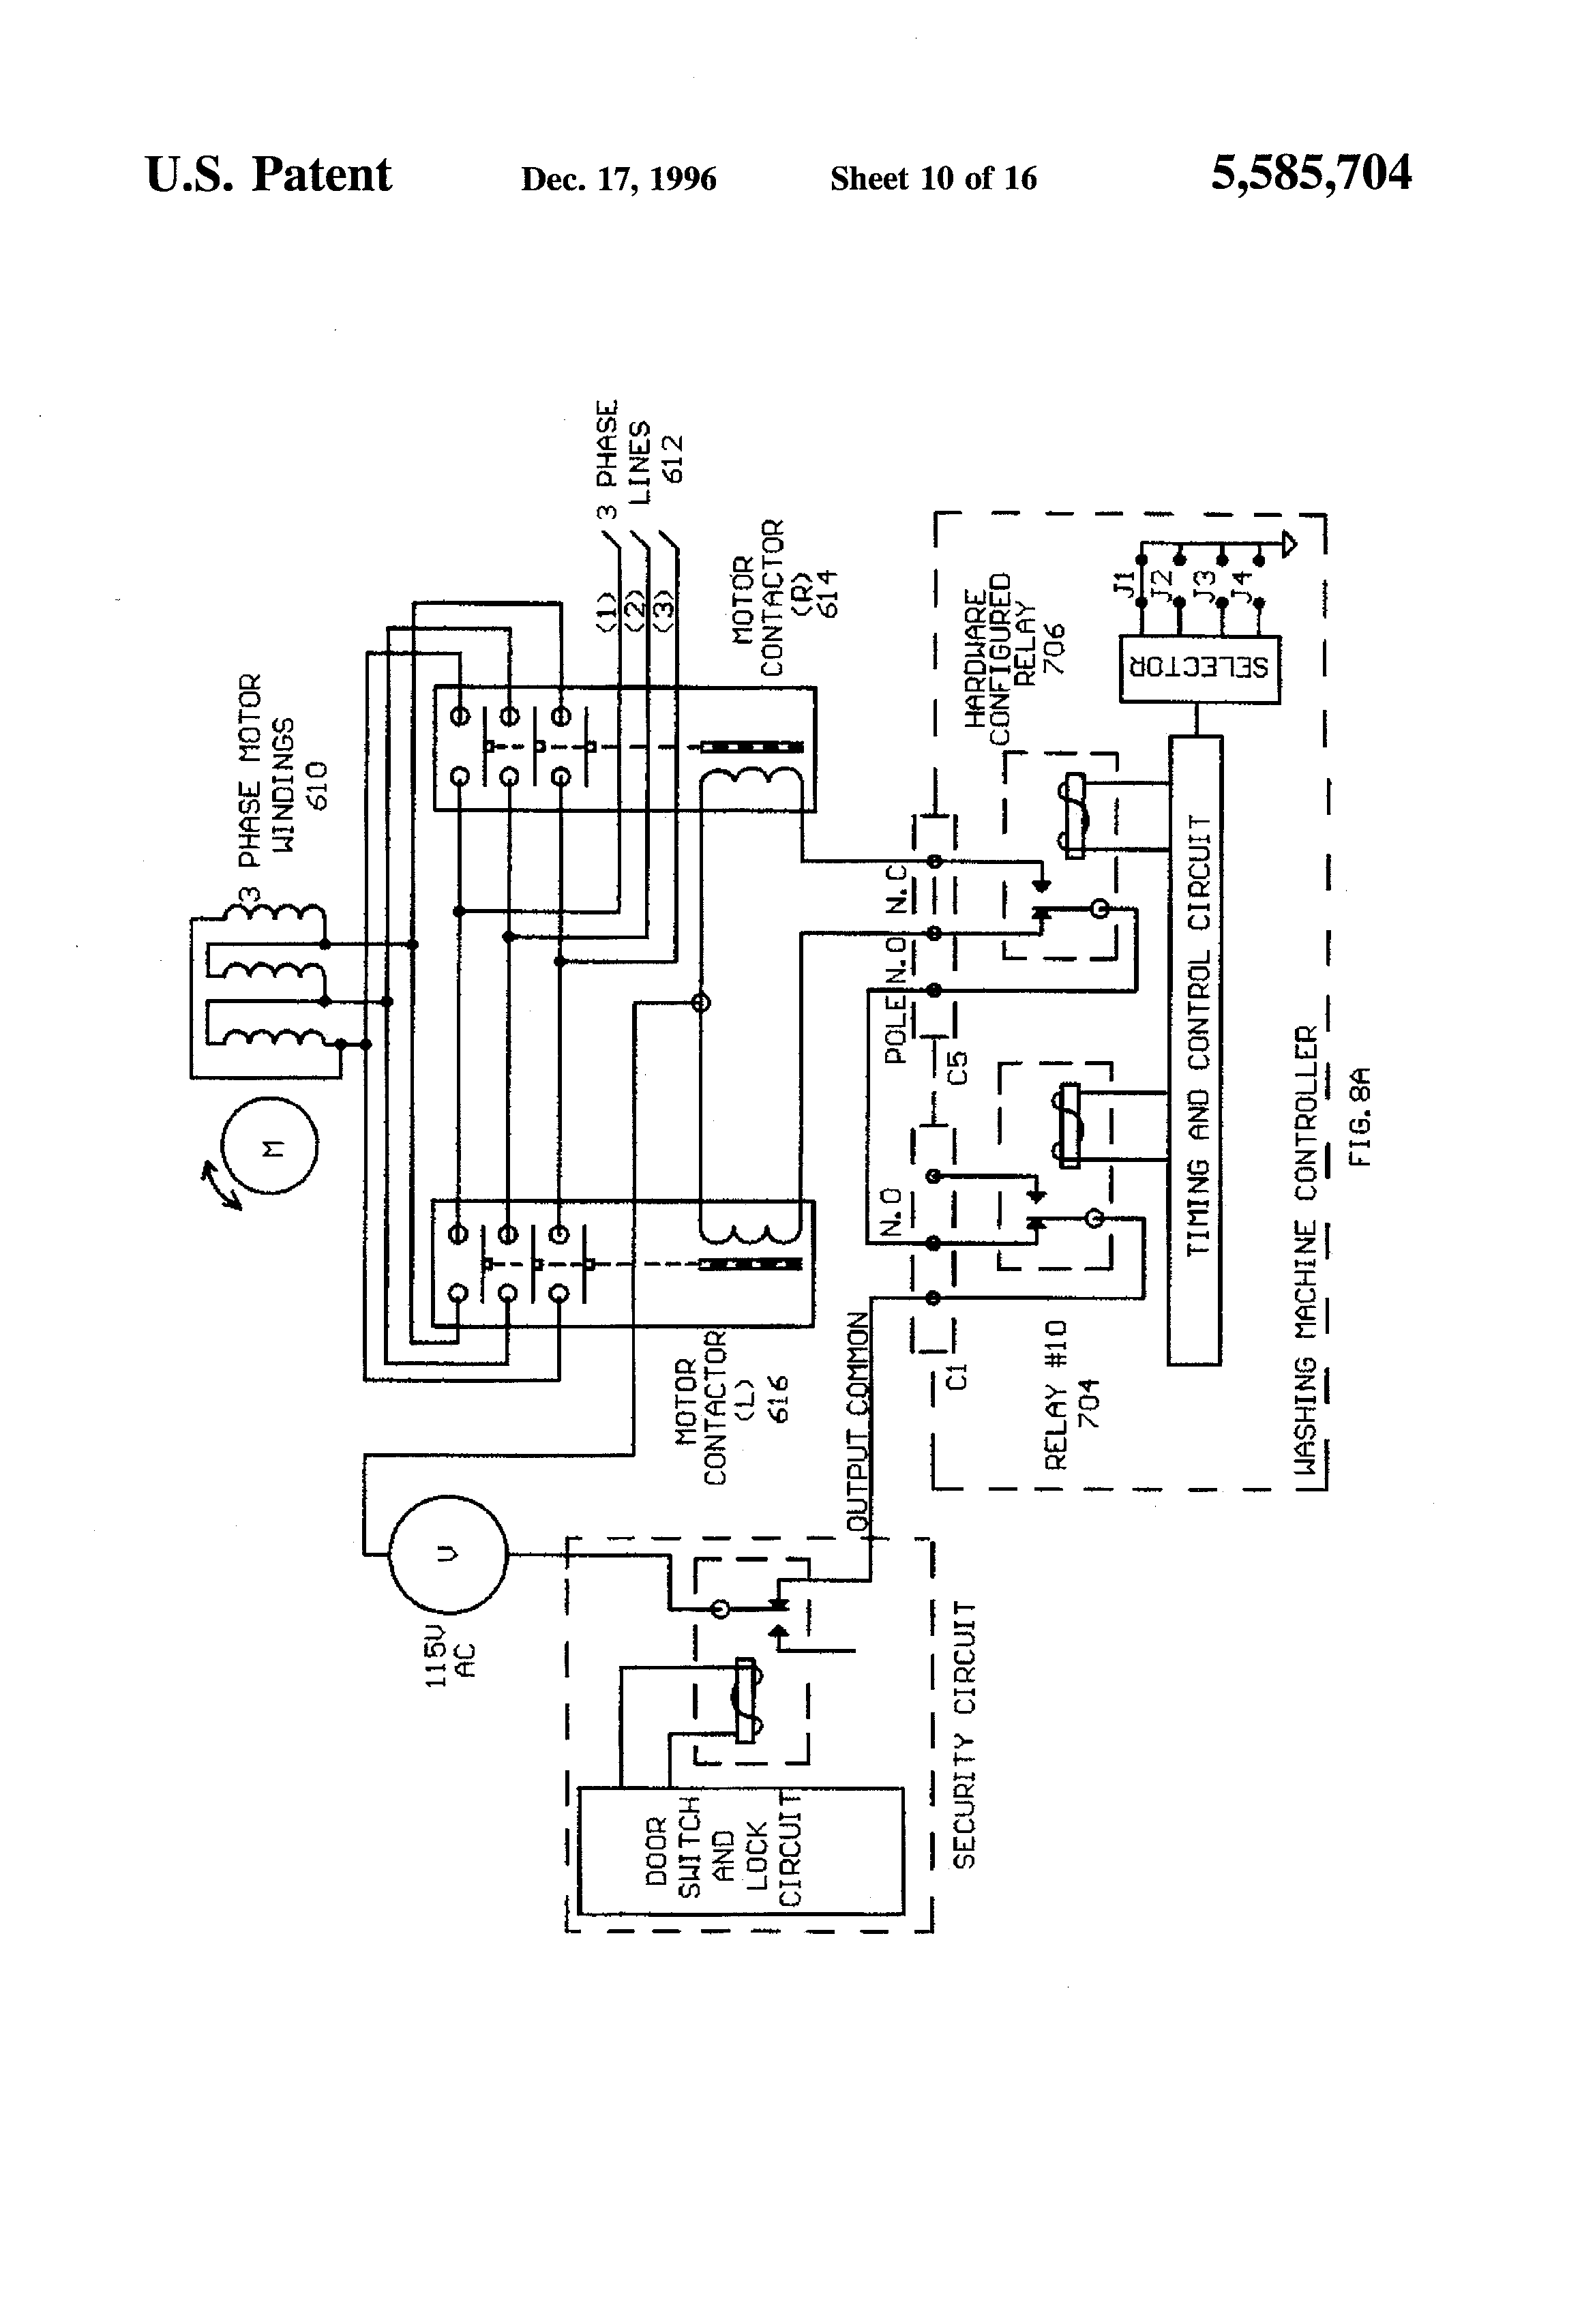 wrg 1641] washing machine motor wiring diagwashing machine motor wiring diag wiring libraryus5585704 10 patent us5585704 computer means for commercial washing machines washer motor wiring diagrams